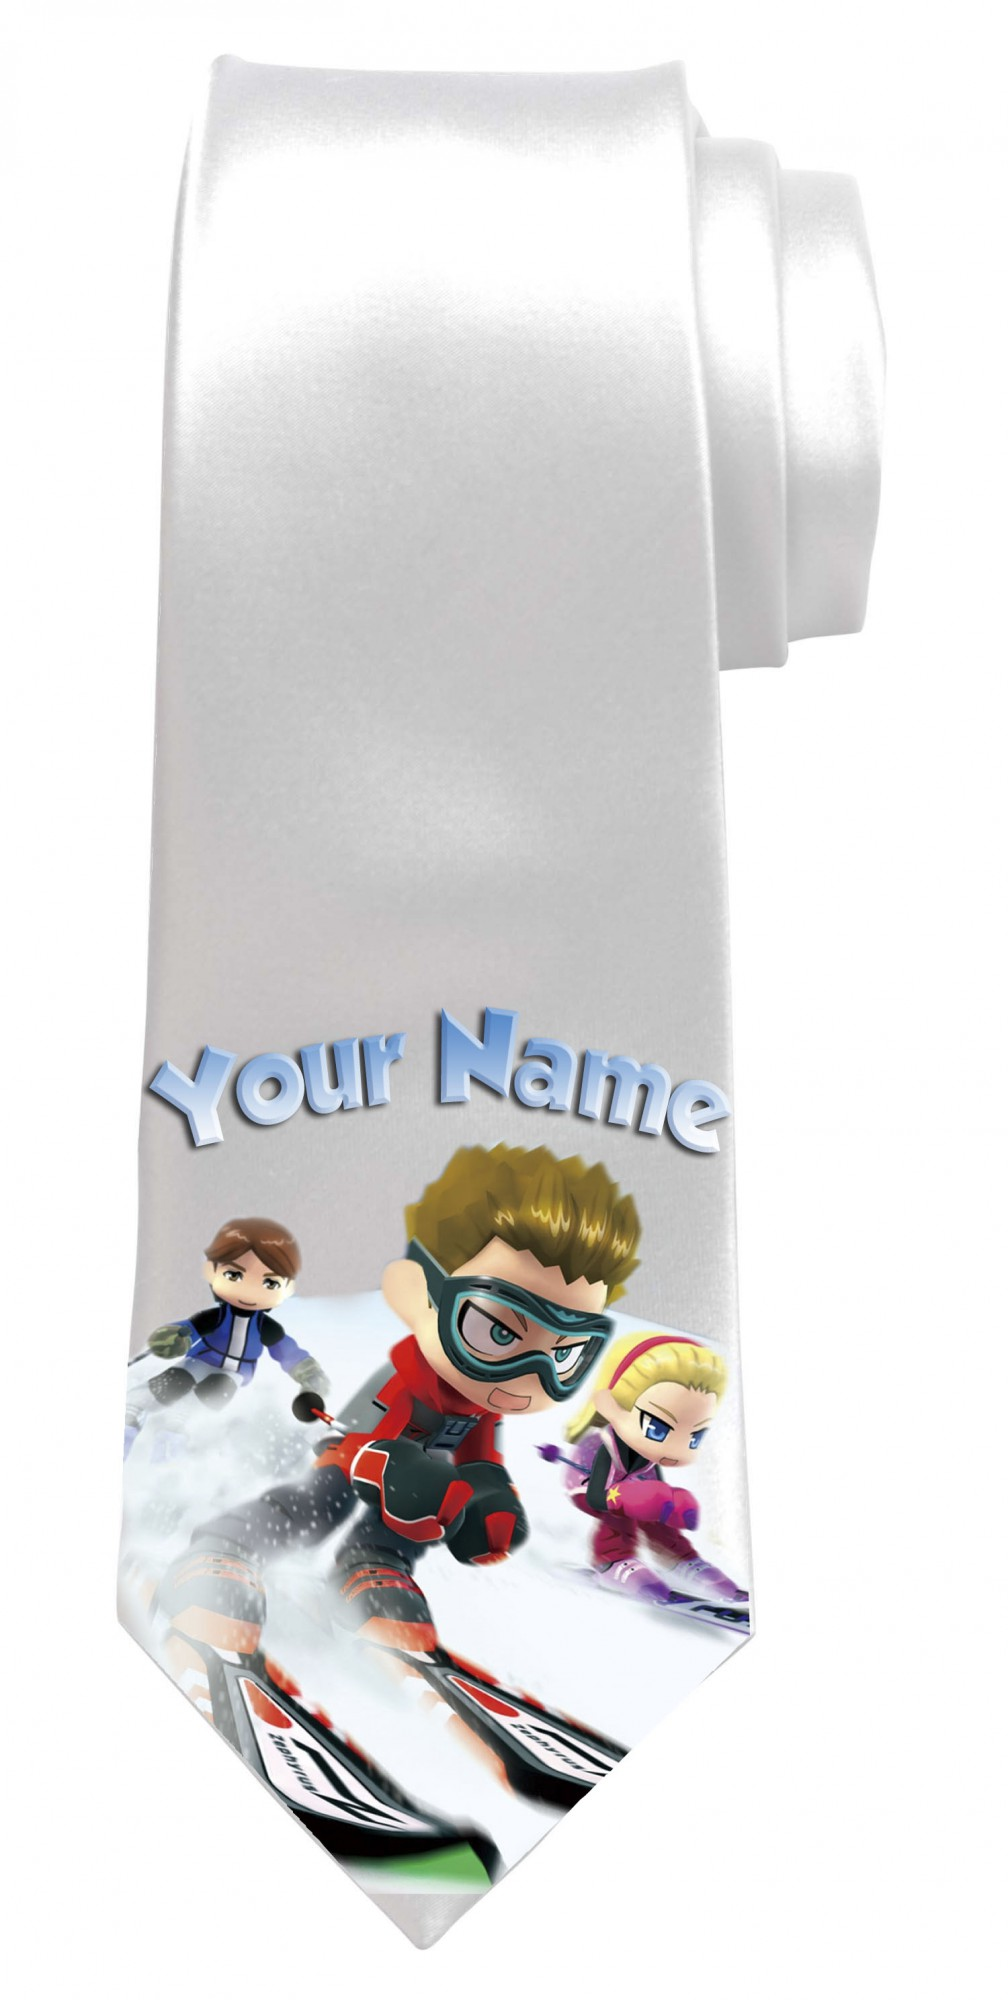 Personalised Ski Necktie